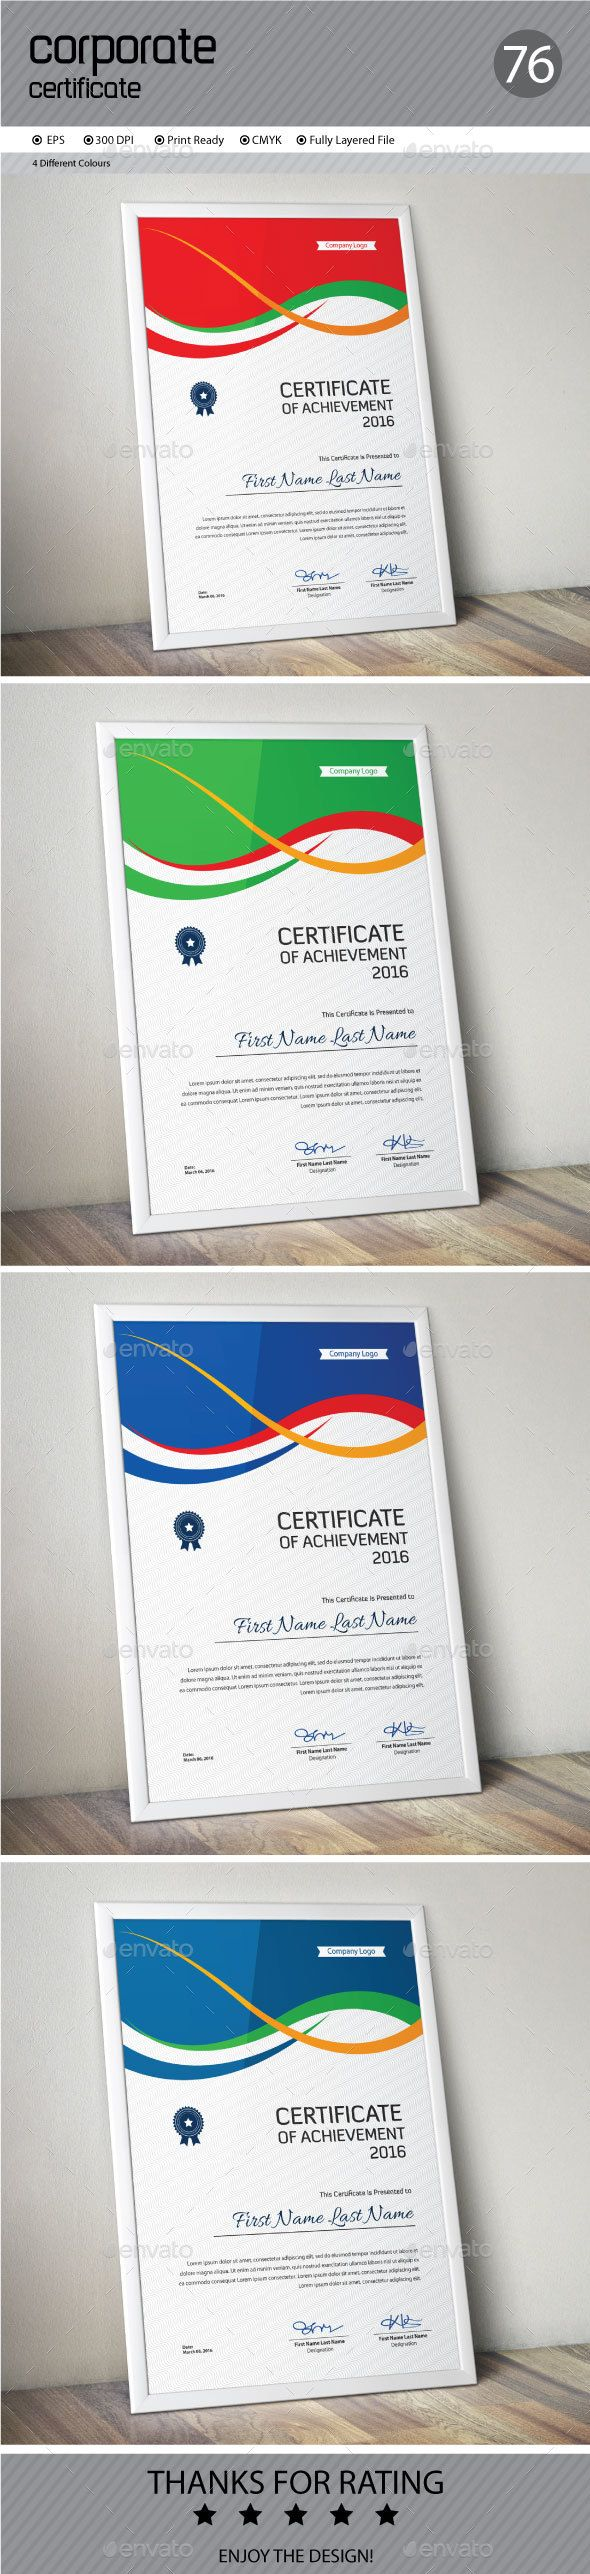 186 best certificate images on pinterest certificate templates certificate by conceptfactory certificate is especially for corporate or professional use 4 different color and easy to modify yadclub Choice Image